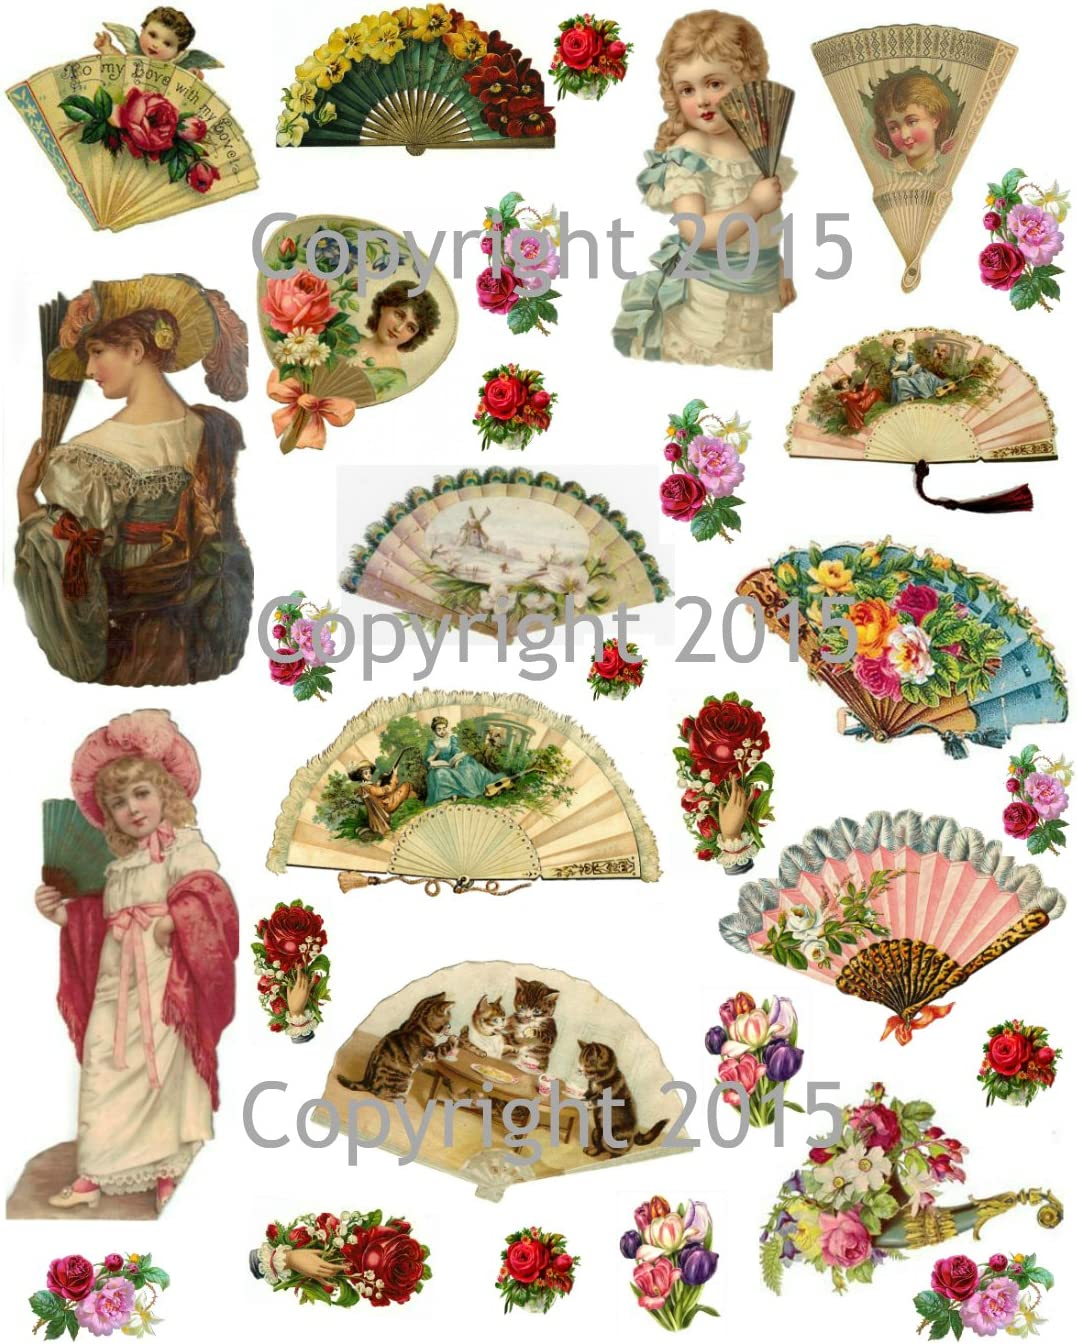 Vintage Victorian Fans and Flowers Collage Sheet Art Images for Decoupage, Scrapbooking, Jewelry Making